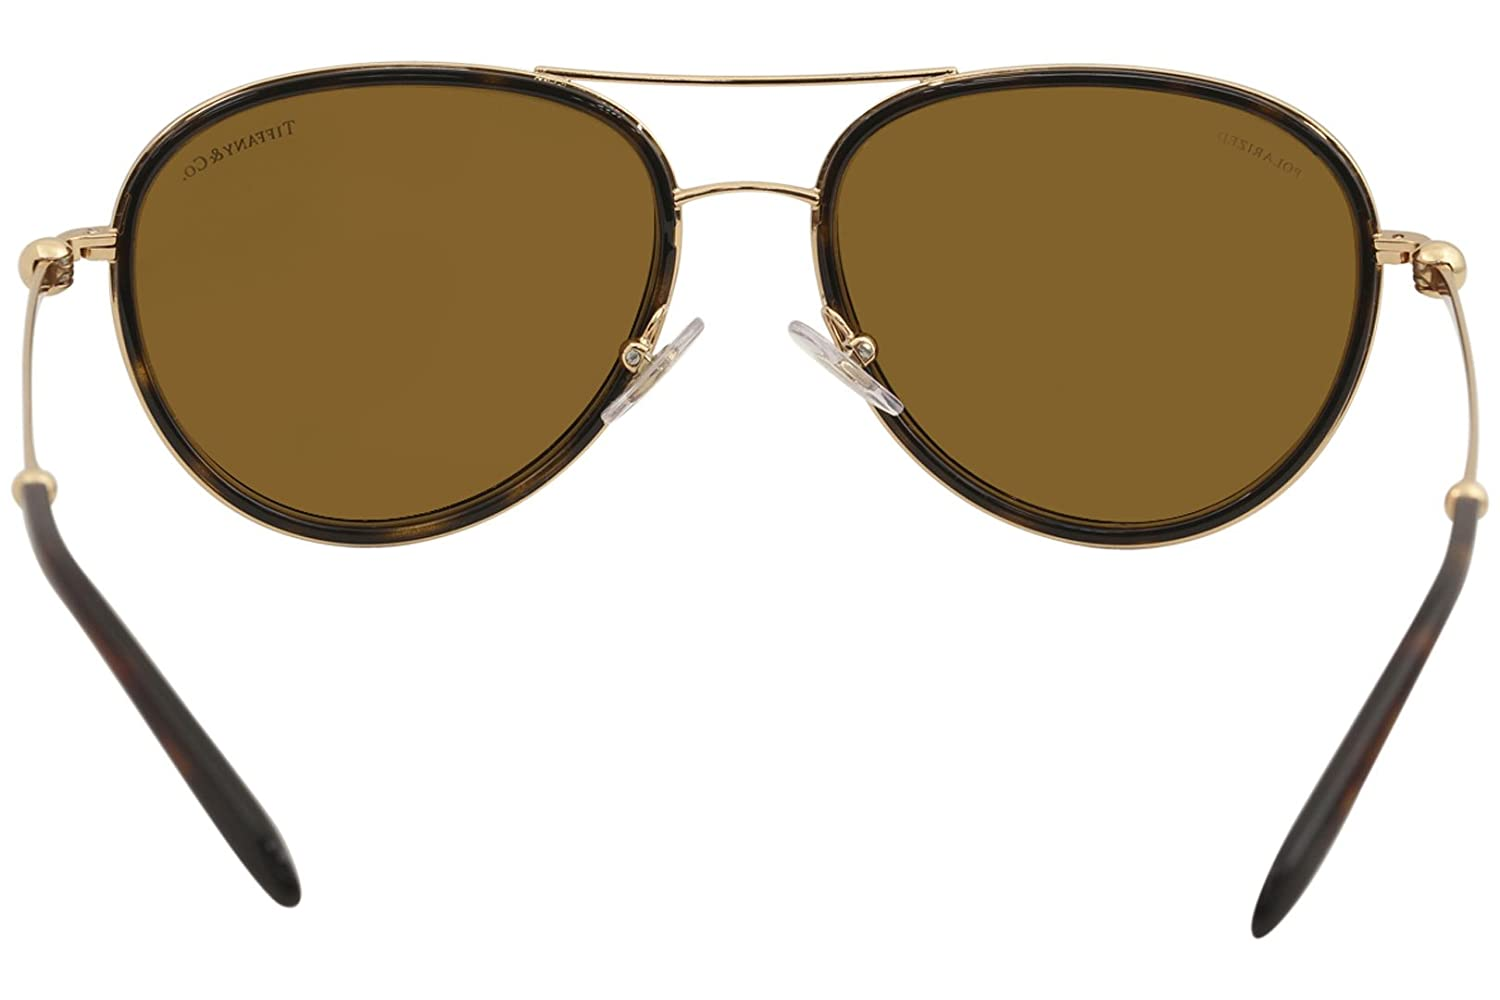 368aabe3092d Tiffany & Co. TF3059 TF/3059 6126/H6 Havana/Gold Pilot Polarized Sunglasses  55mm at Amazon Men's Clothing store: